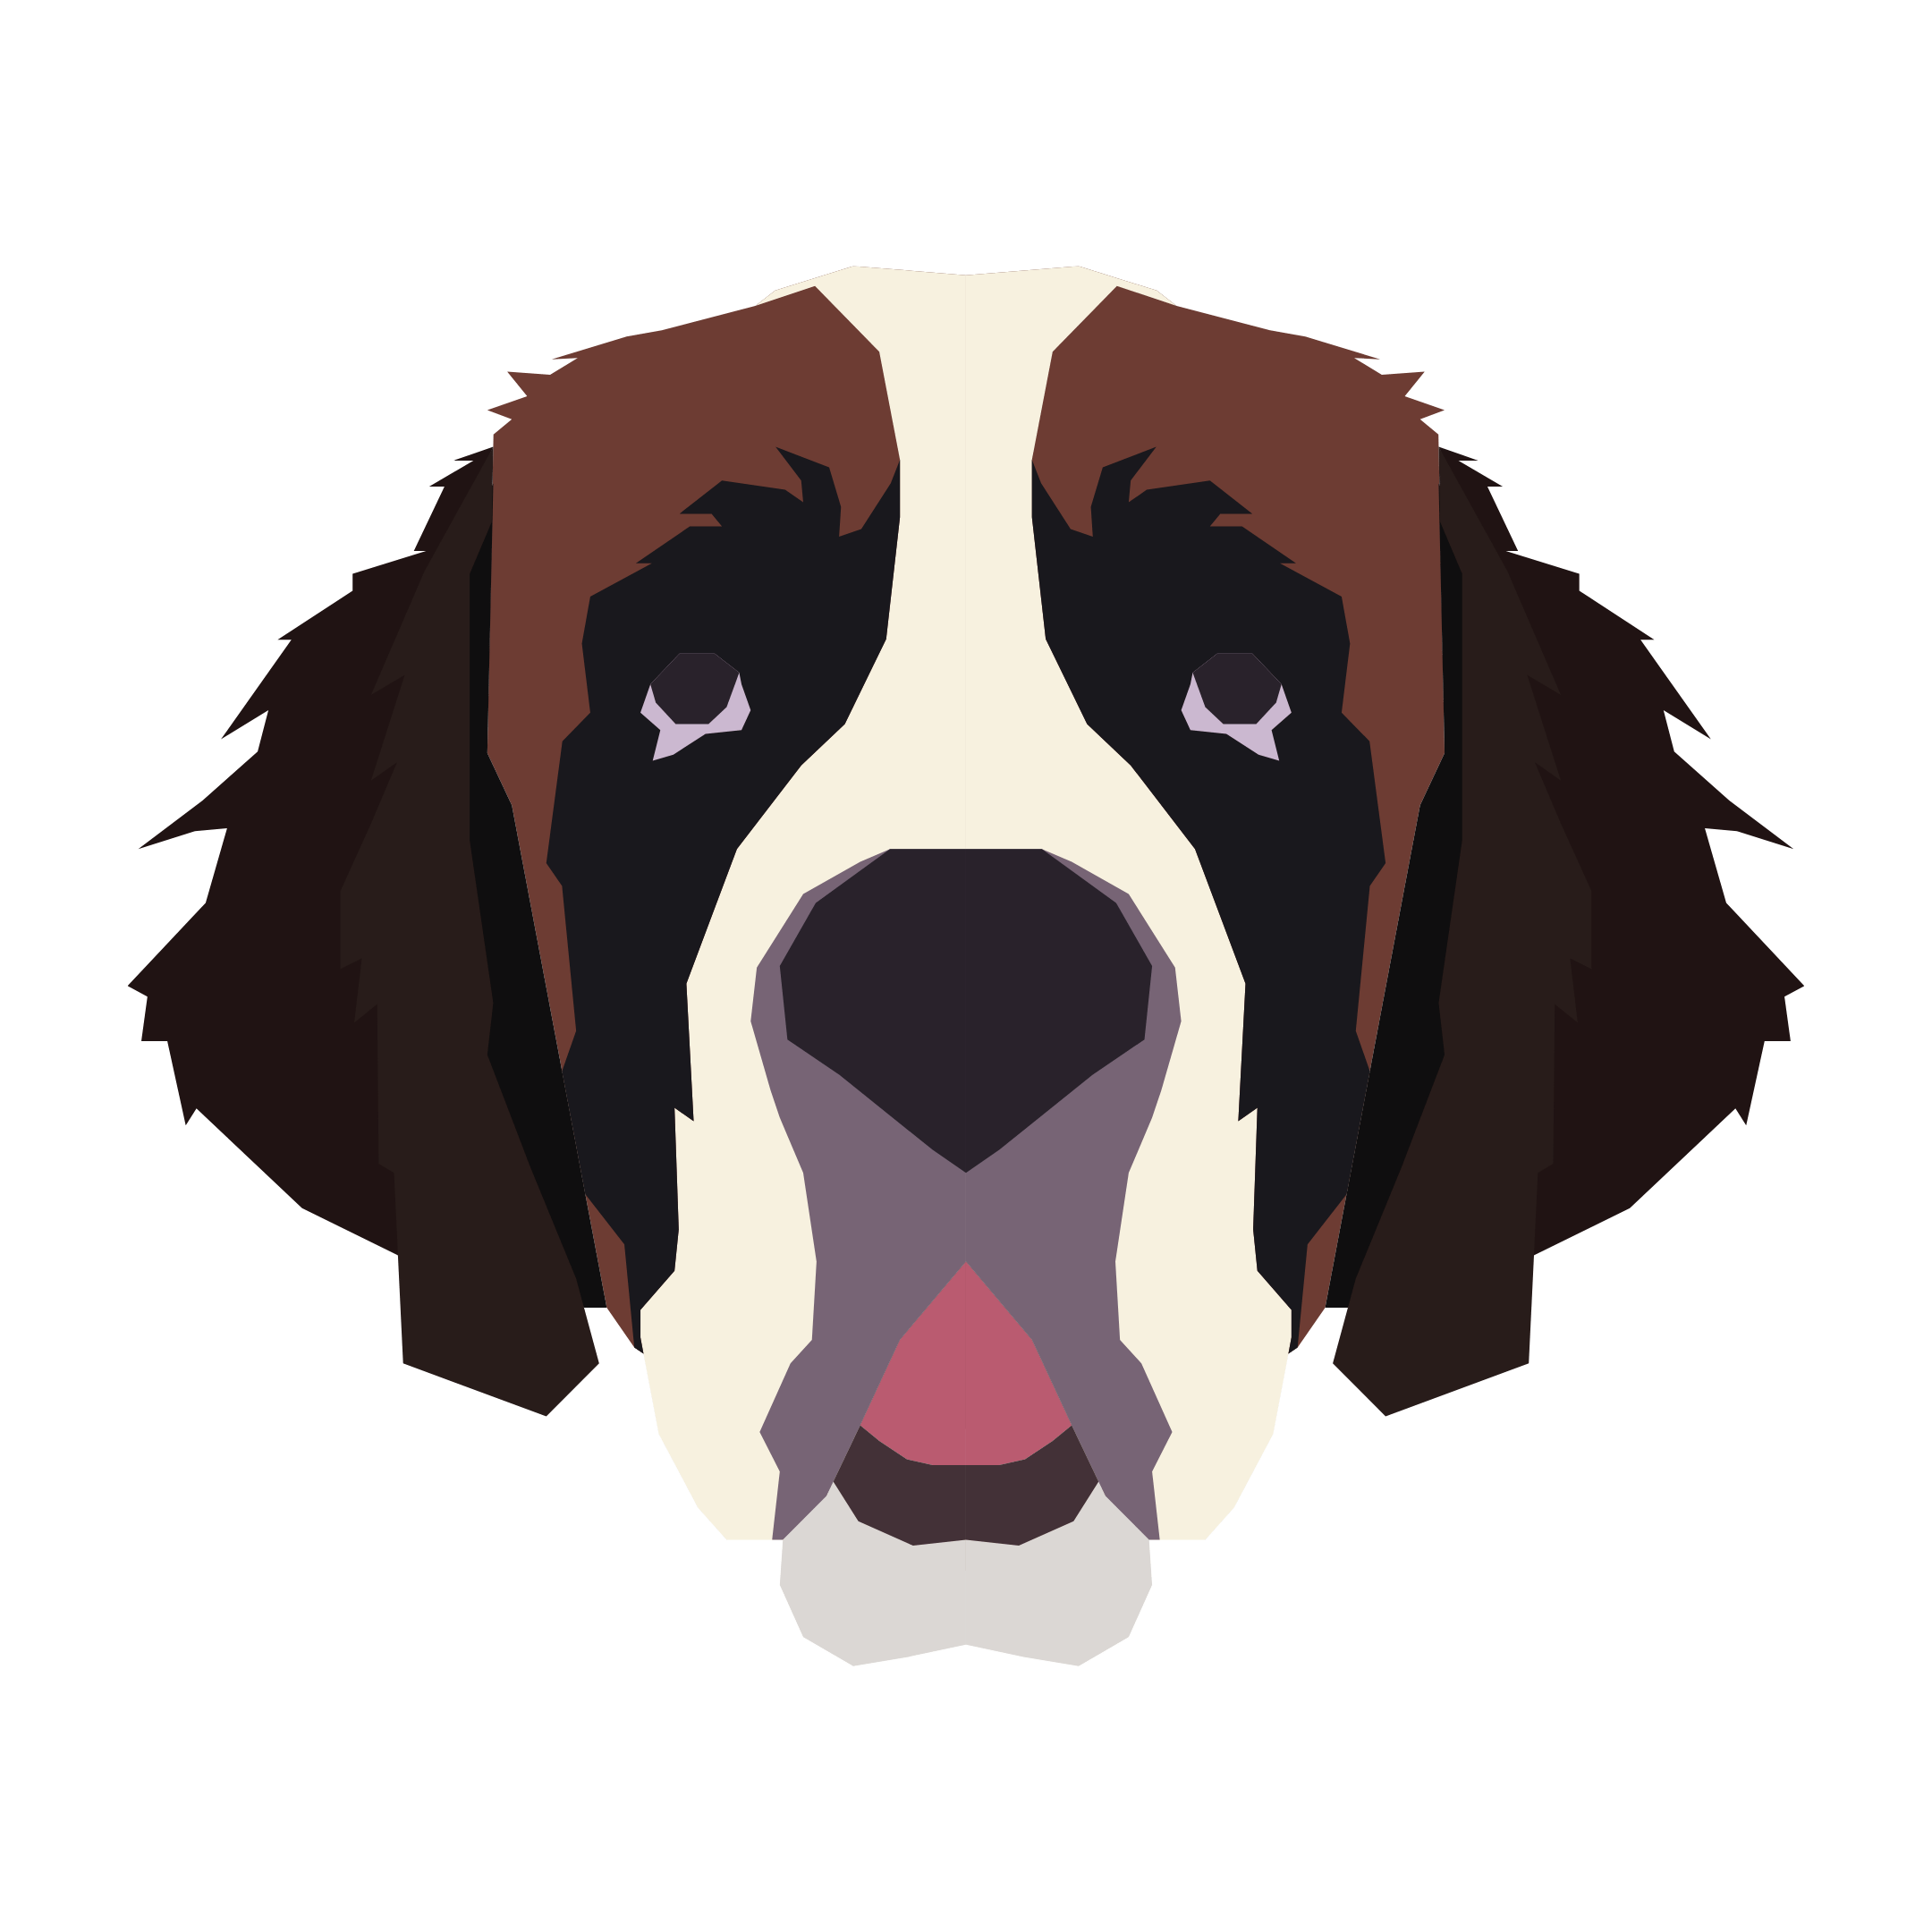 st-bernard illustration